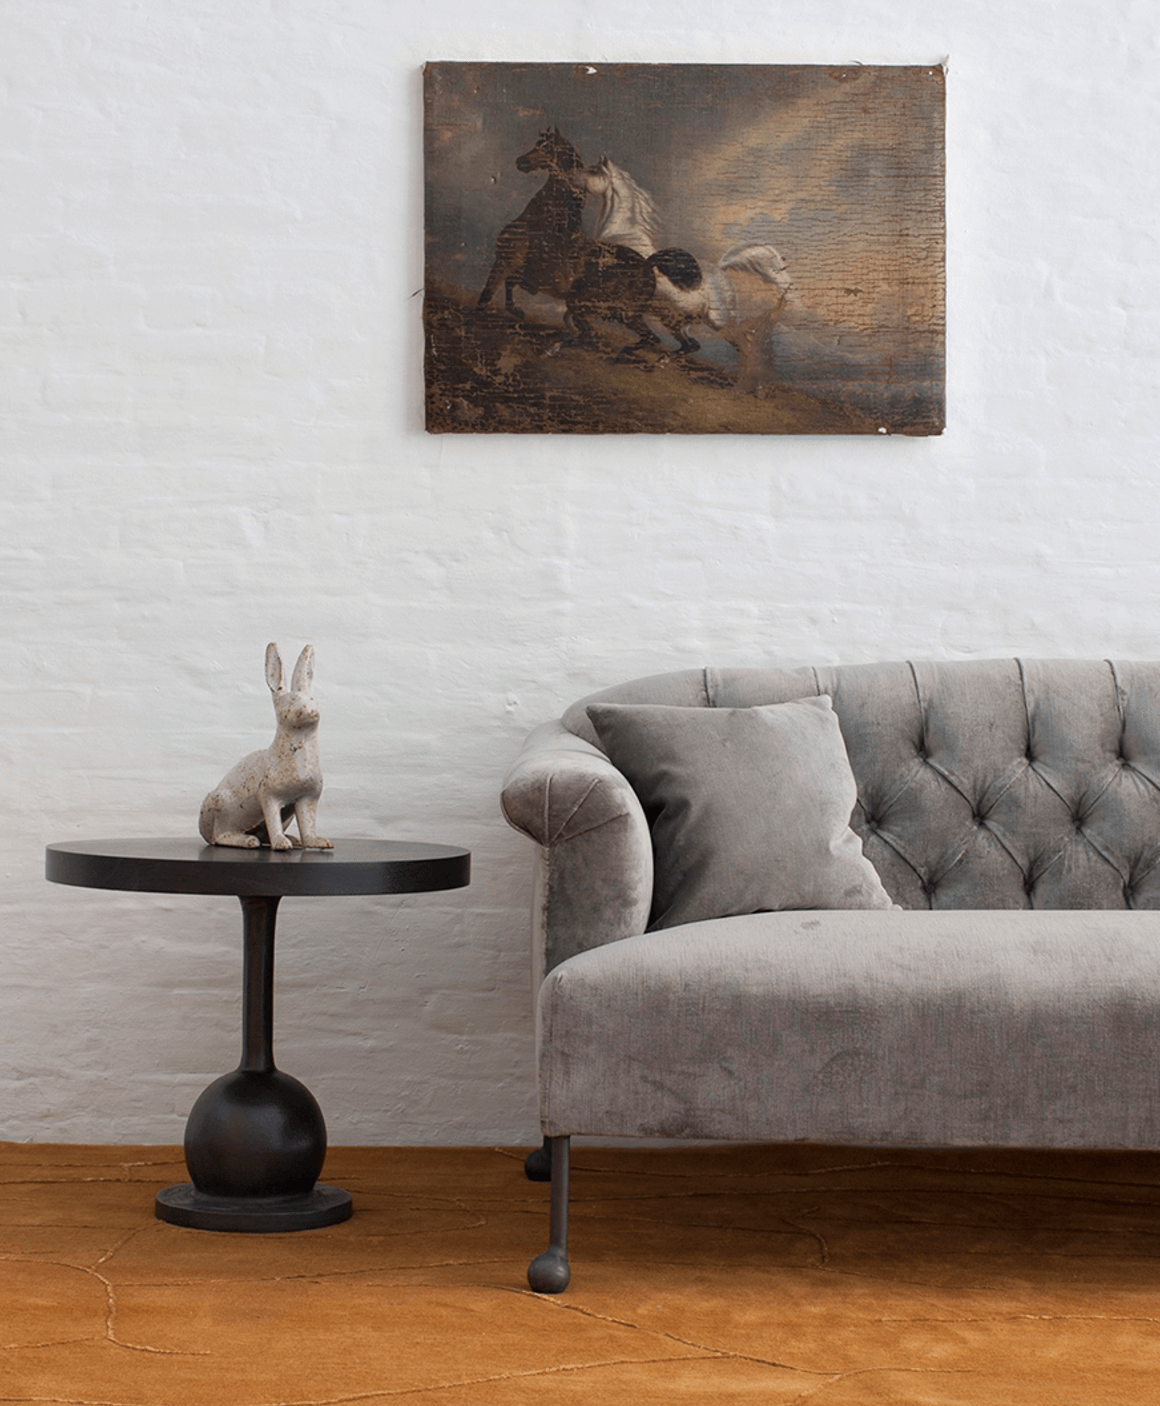 Shop Home and Kids BDDW Furniture Rabbit Sofa